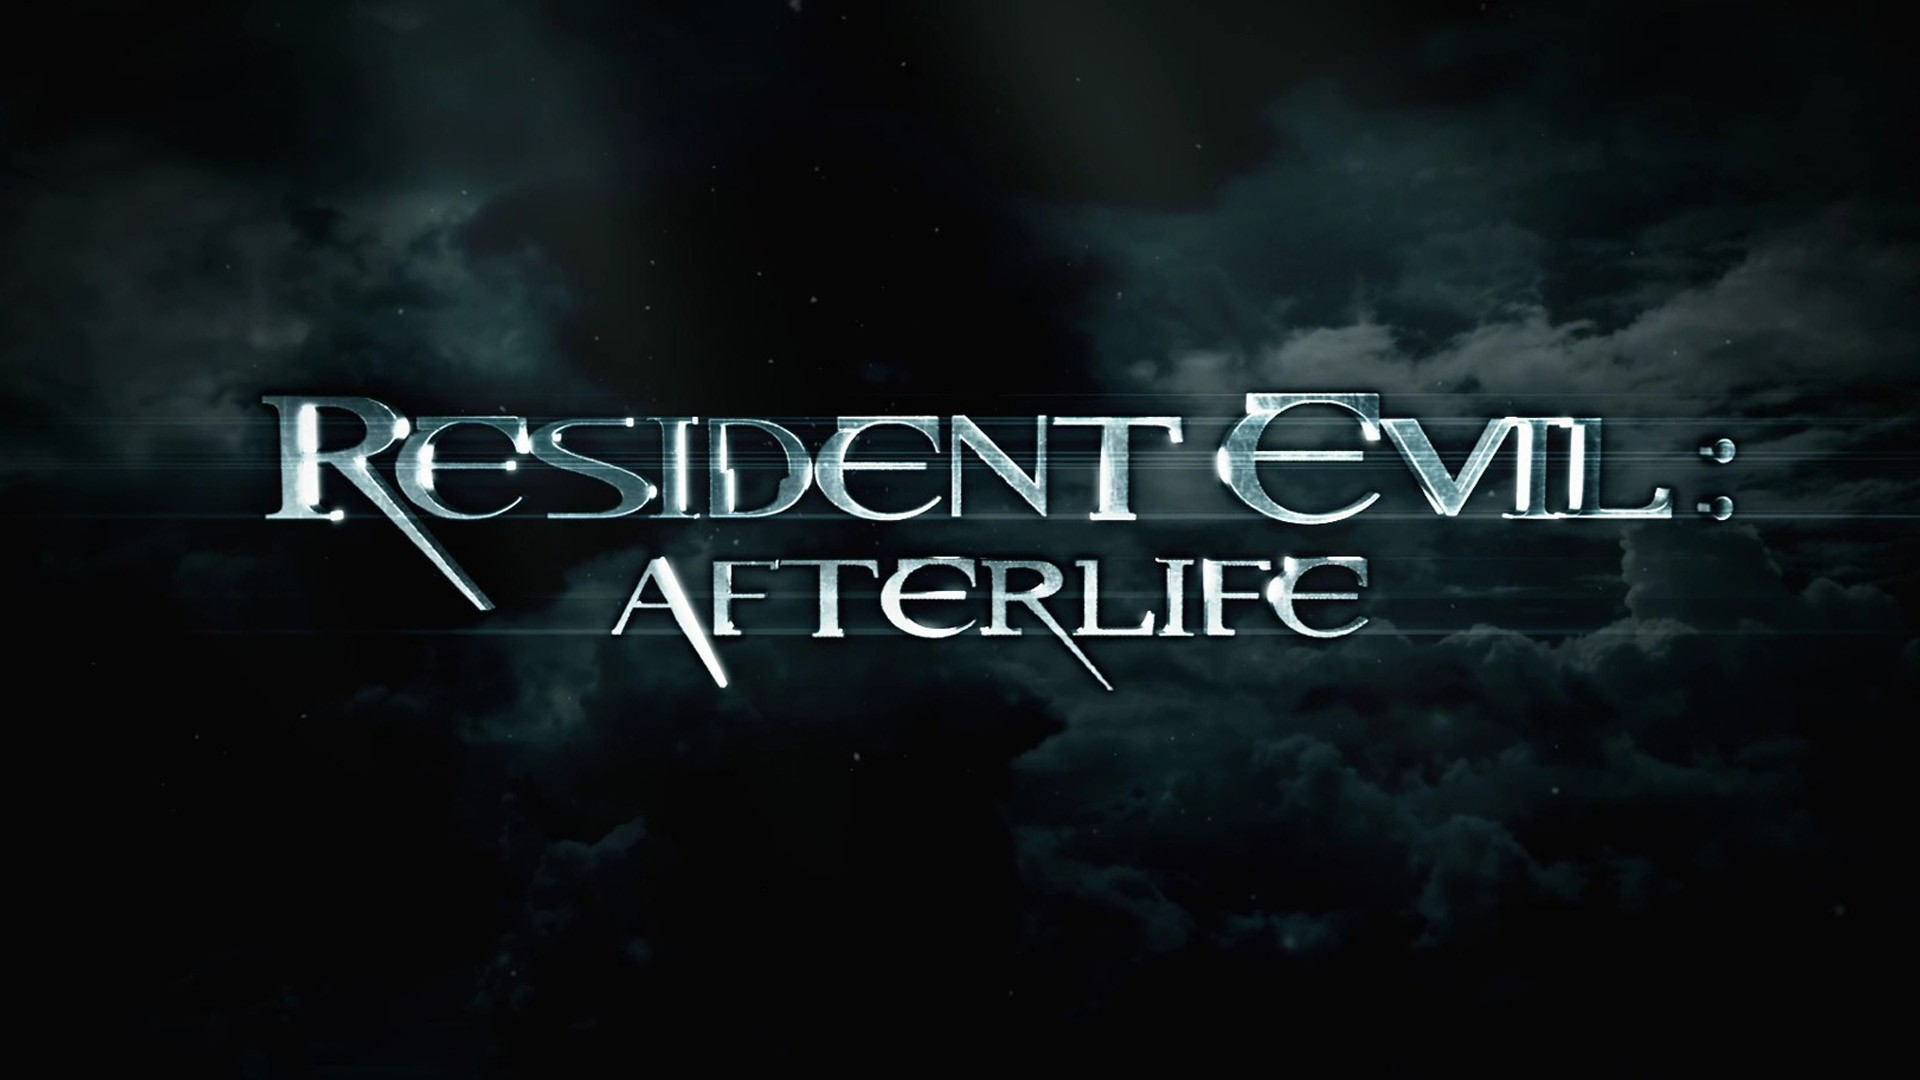 1920x1080 Wallpaper Resident evil, Afterlife, Movie, Photo, Game HD, Picture, Image